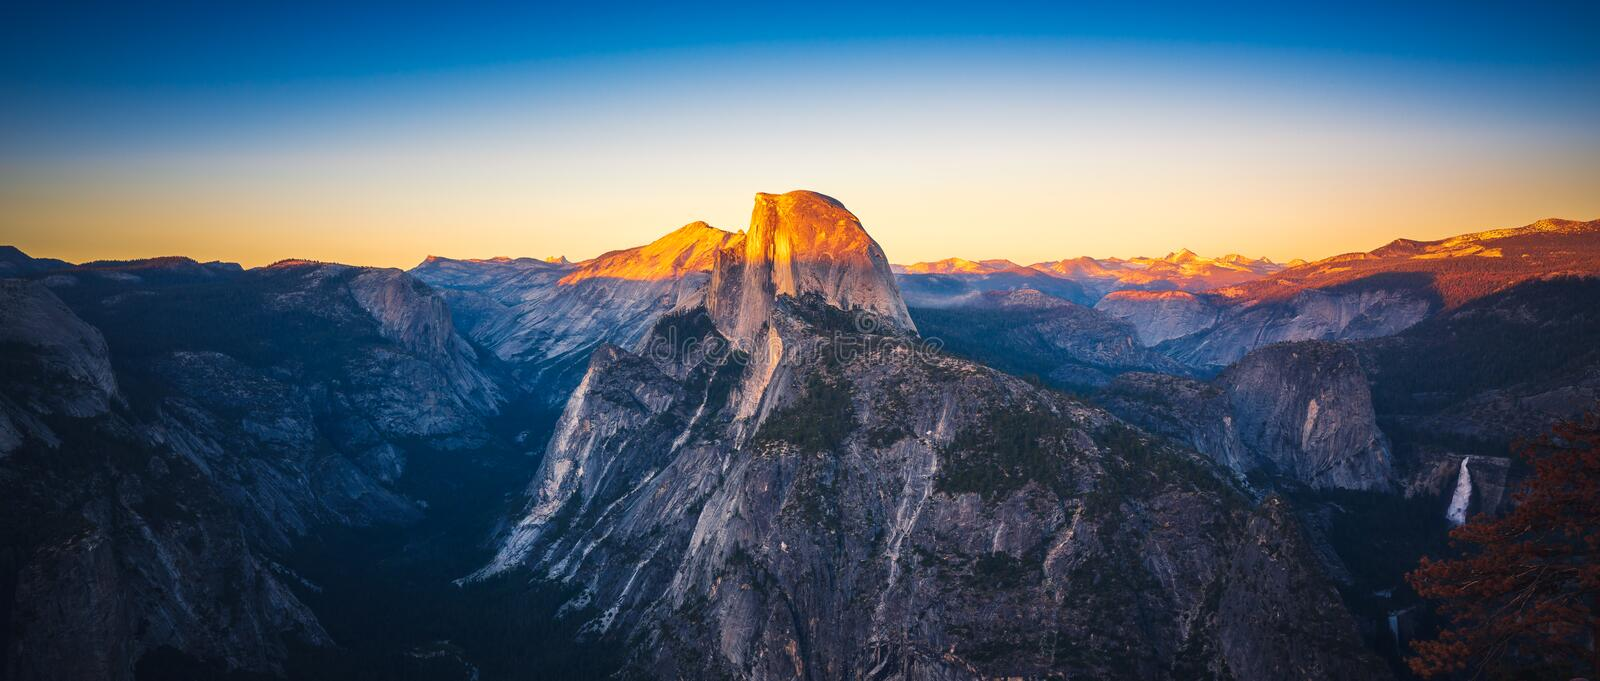 Panoramic Sunset View of Half Dome from Glacier Point in Yosemi. Te National Park, California, USA royalty free stock photography